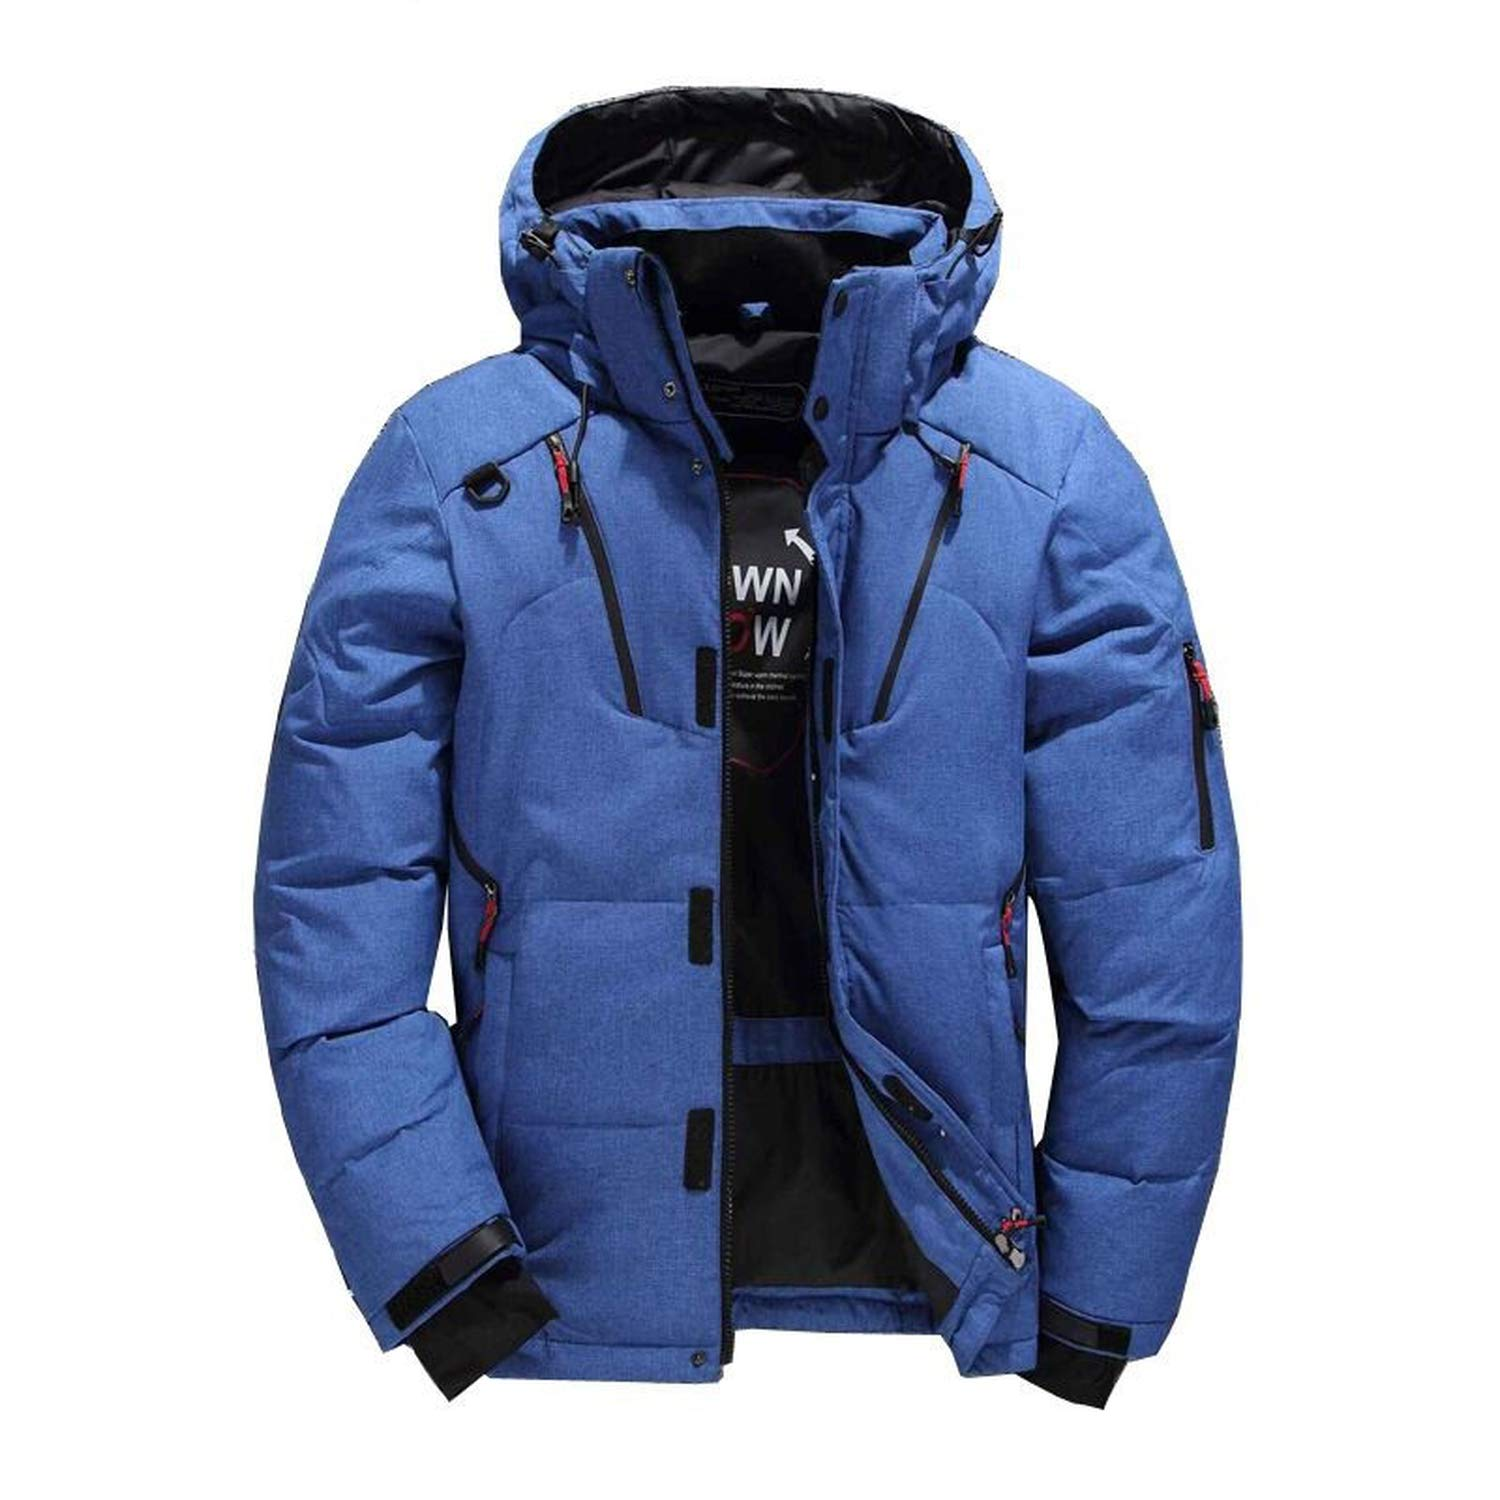 Opernfyh Men's Frost Fighter Insulated Jacket Winter Hooded Packable